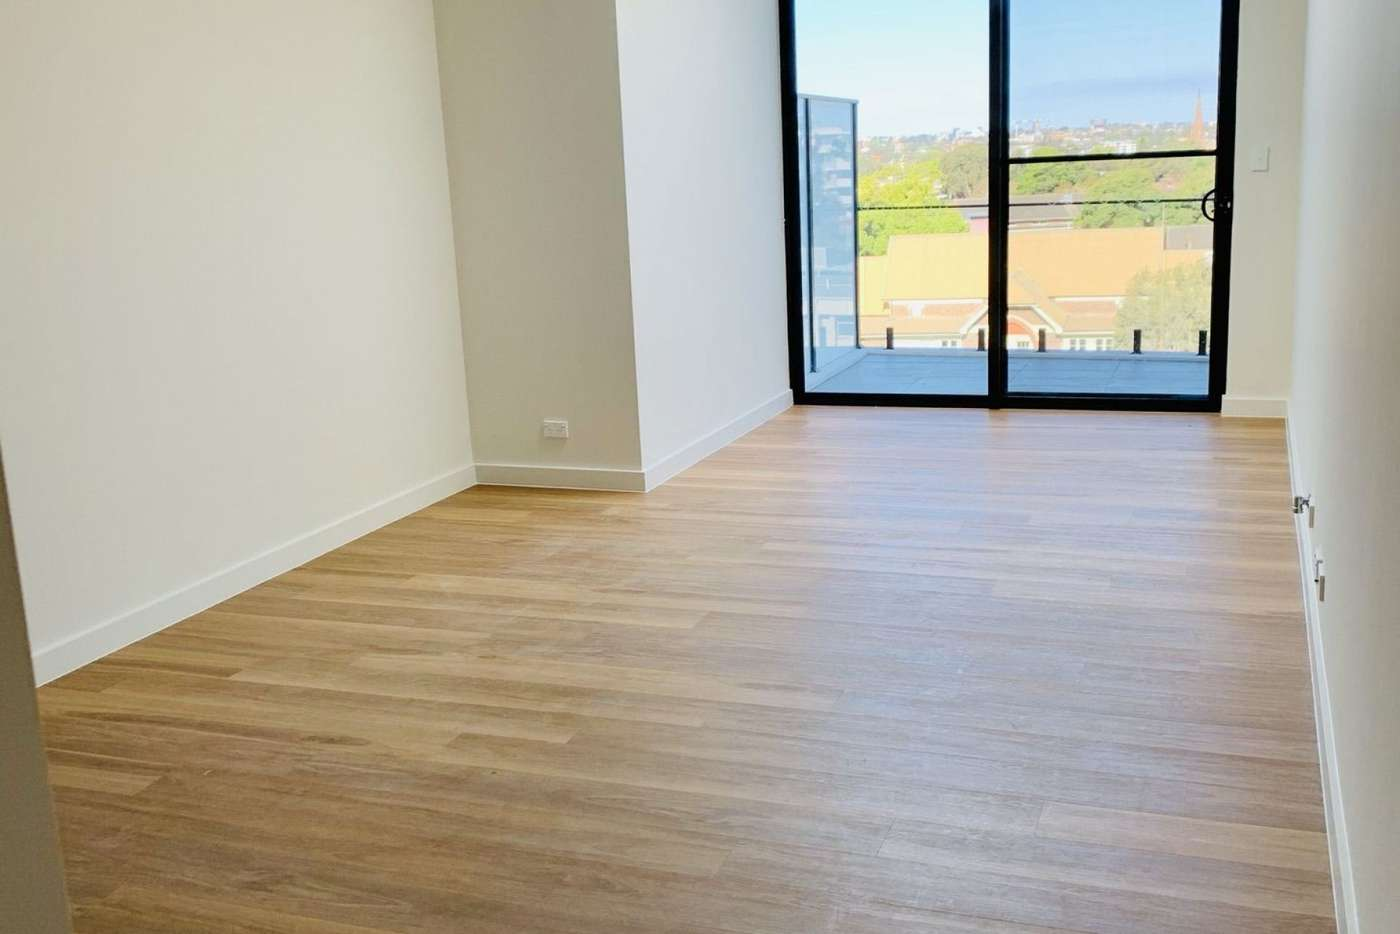 Sixth view of Homely apartment listing, 704/2-4 Murrell Street, Ashfield NSW 2131